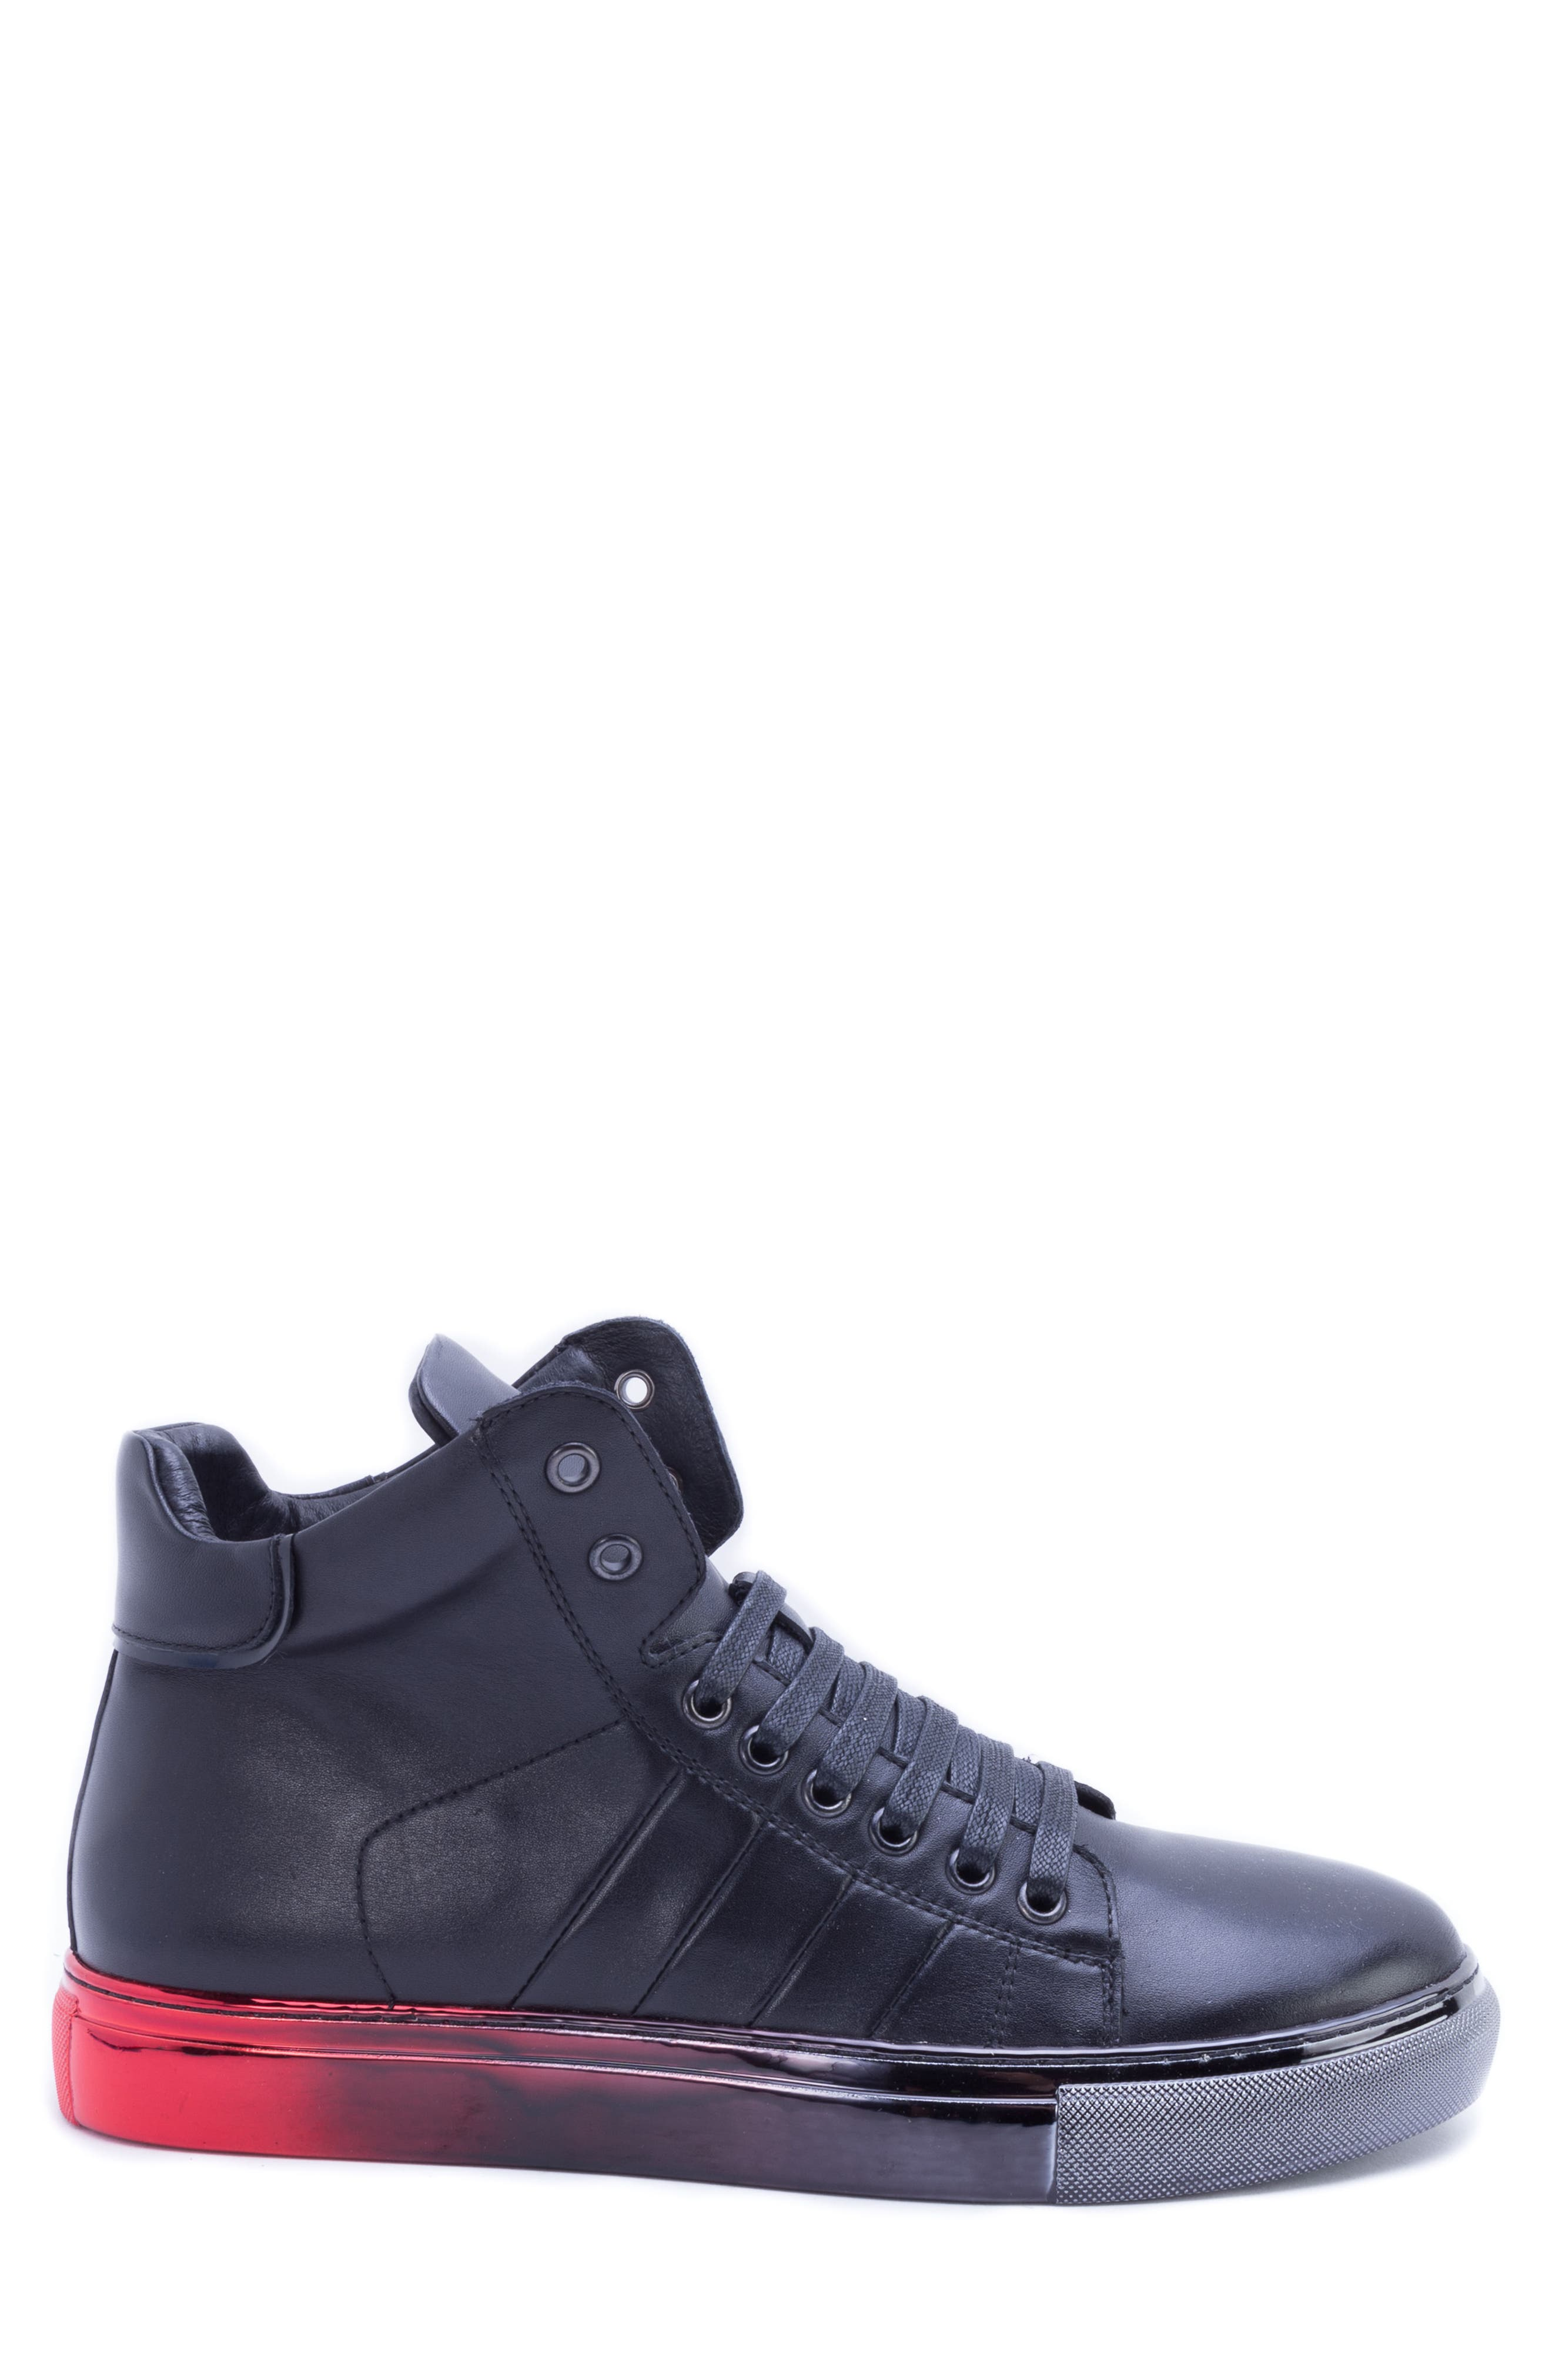 BADGLEY MISCHKA COLLECTION,                             Badgley Mischka Bronson Sneaker,                             Alternate thumbnail 3, color,                             BLACK LEATHER